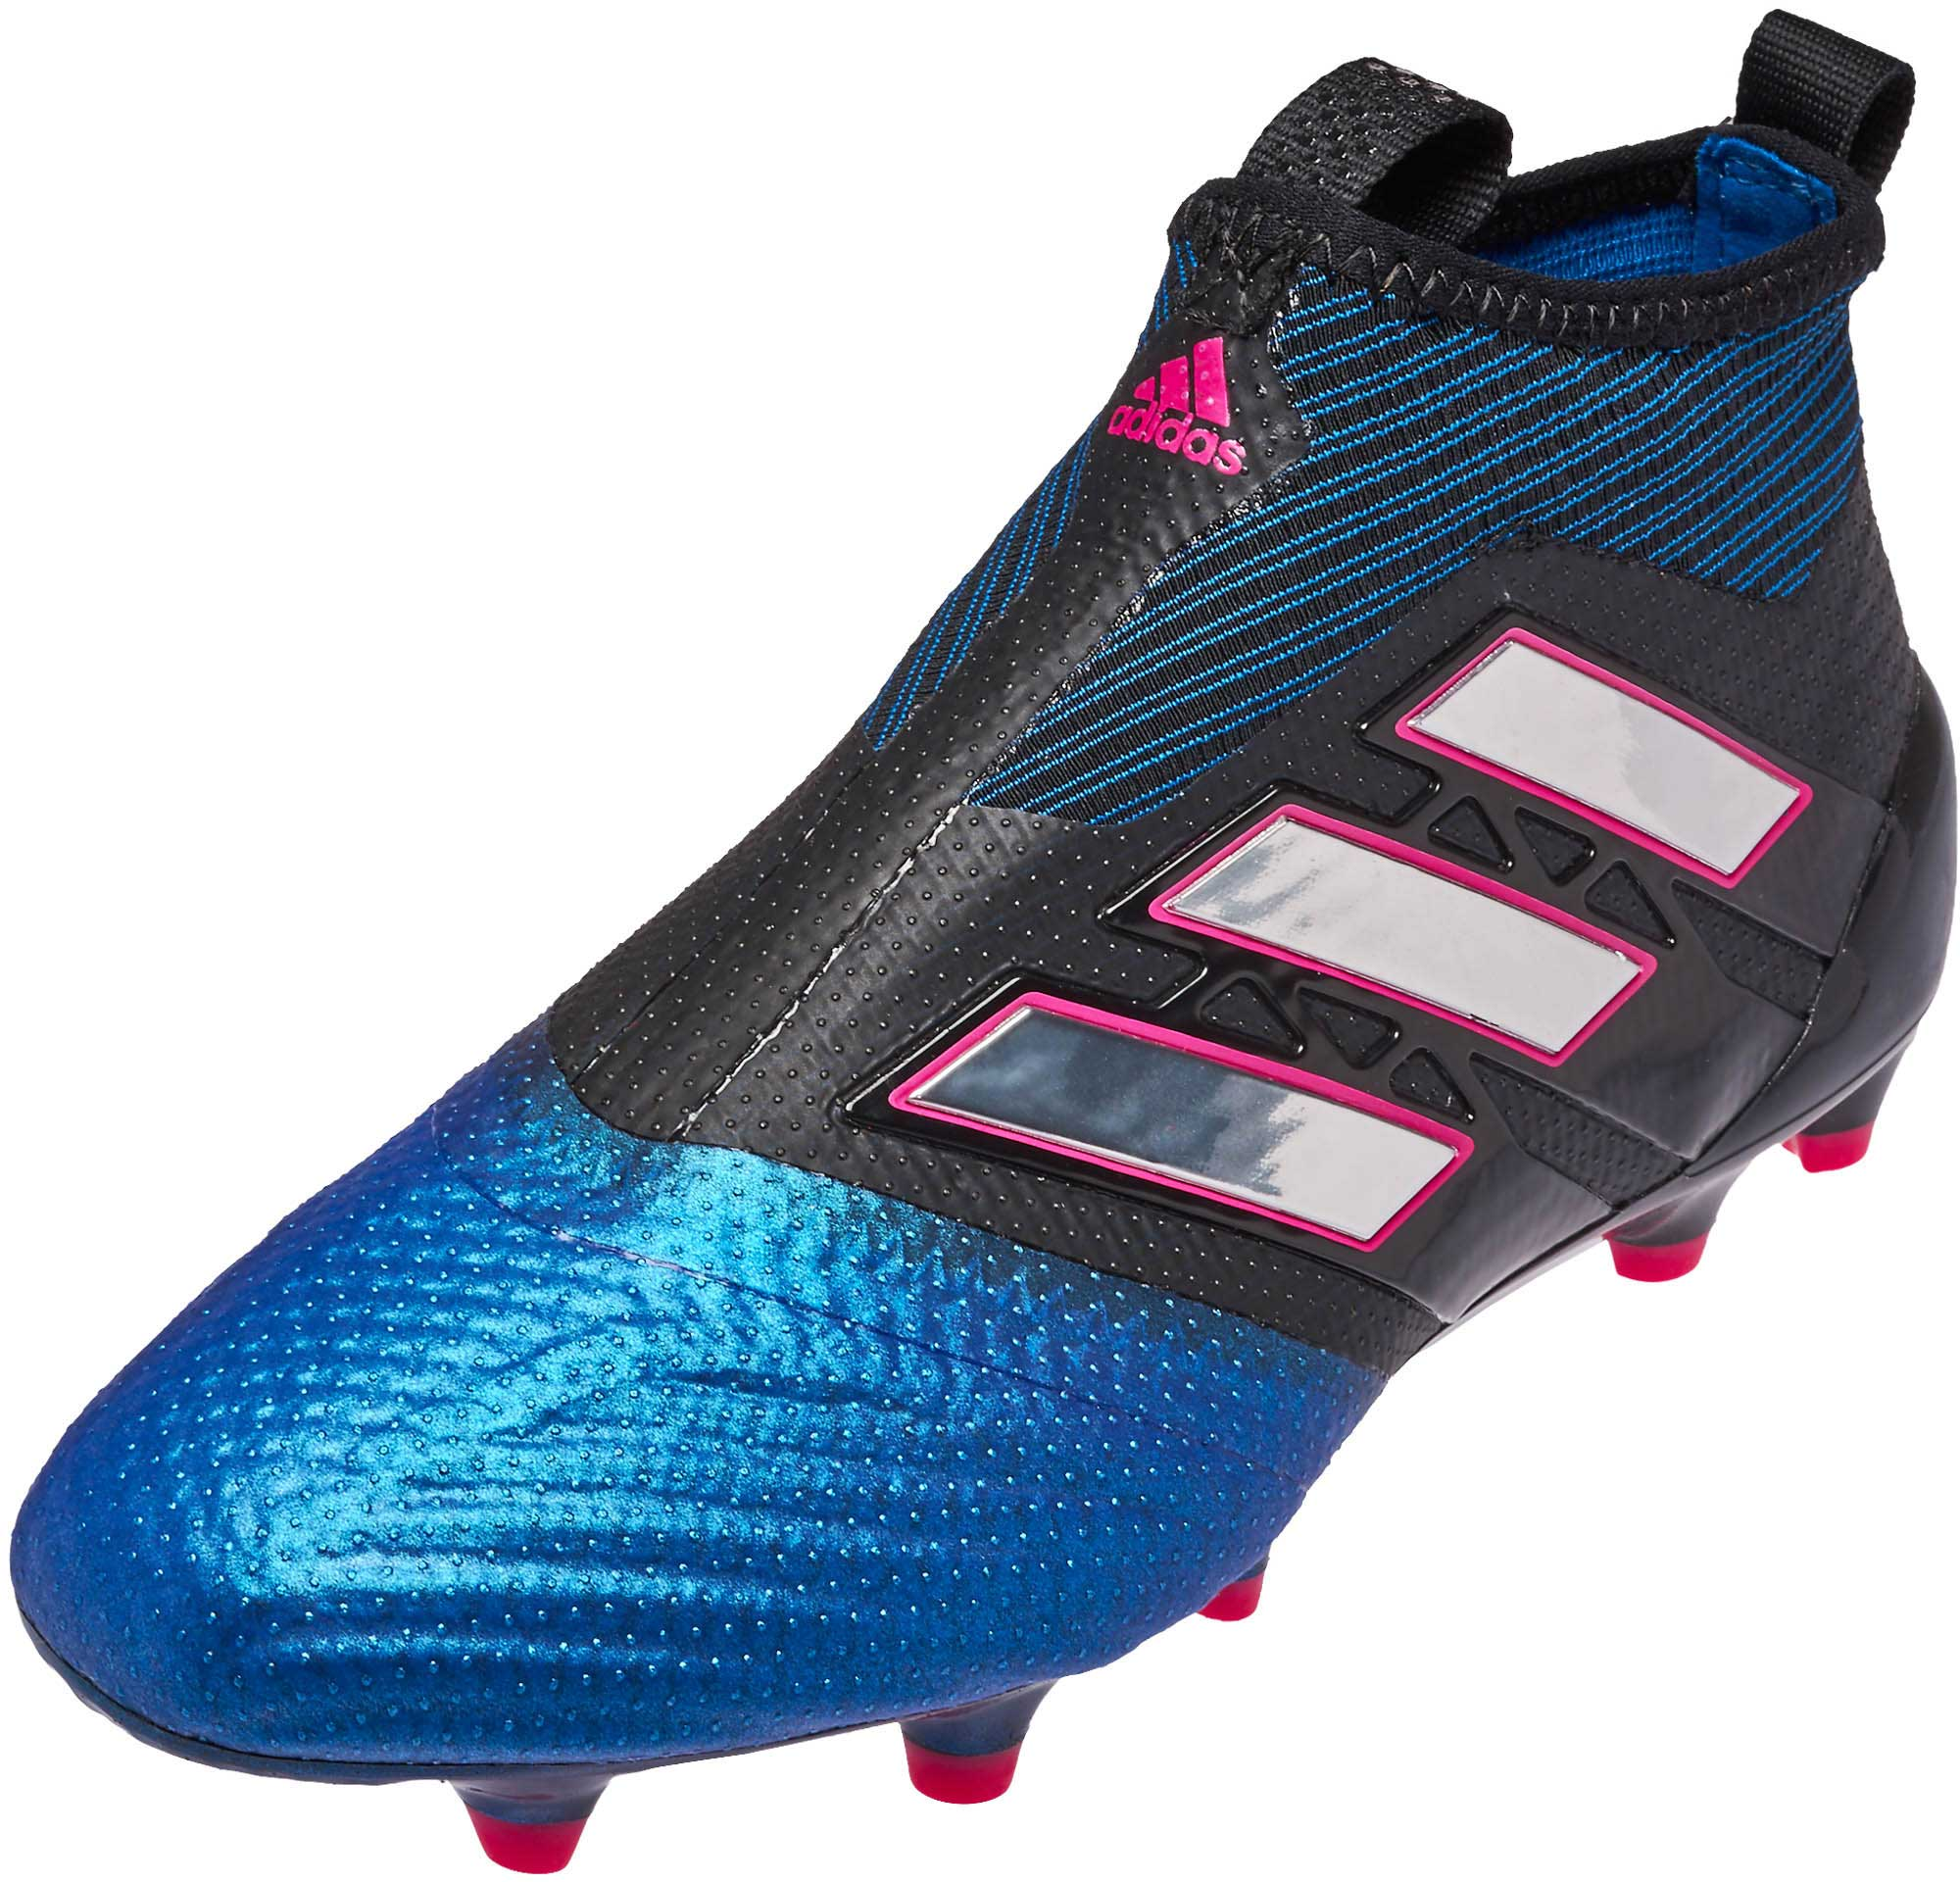 a83b3c2fba8 adidas Kids ACE 17 Purecontrol FG- Youth Soccer Cleats